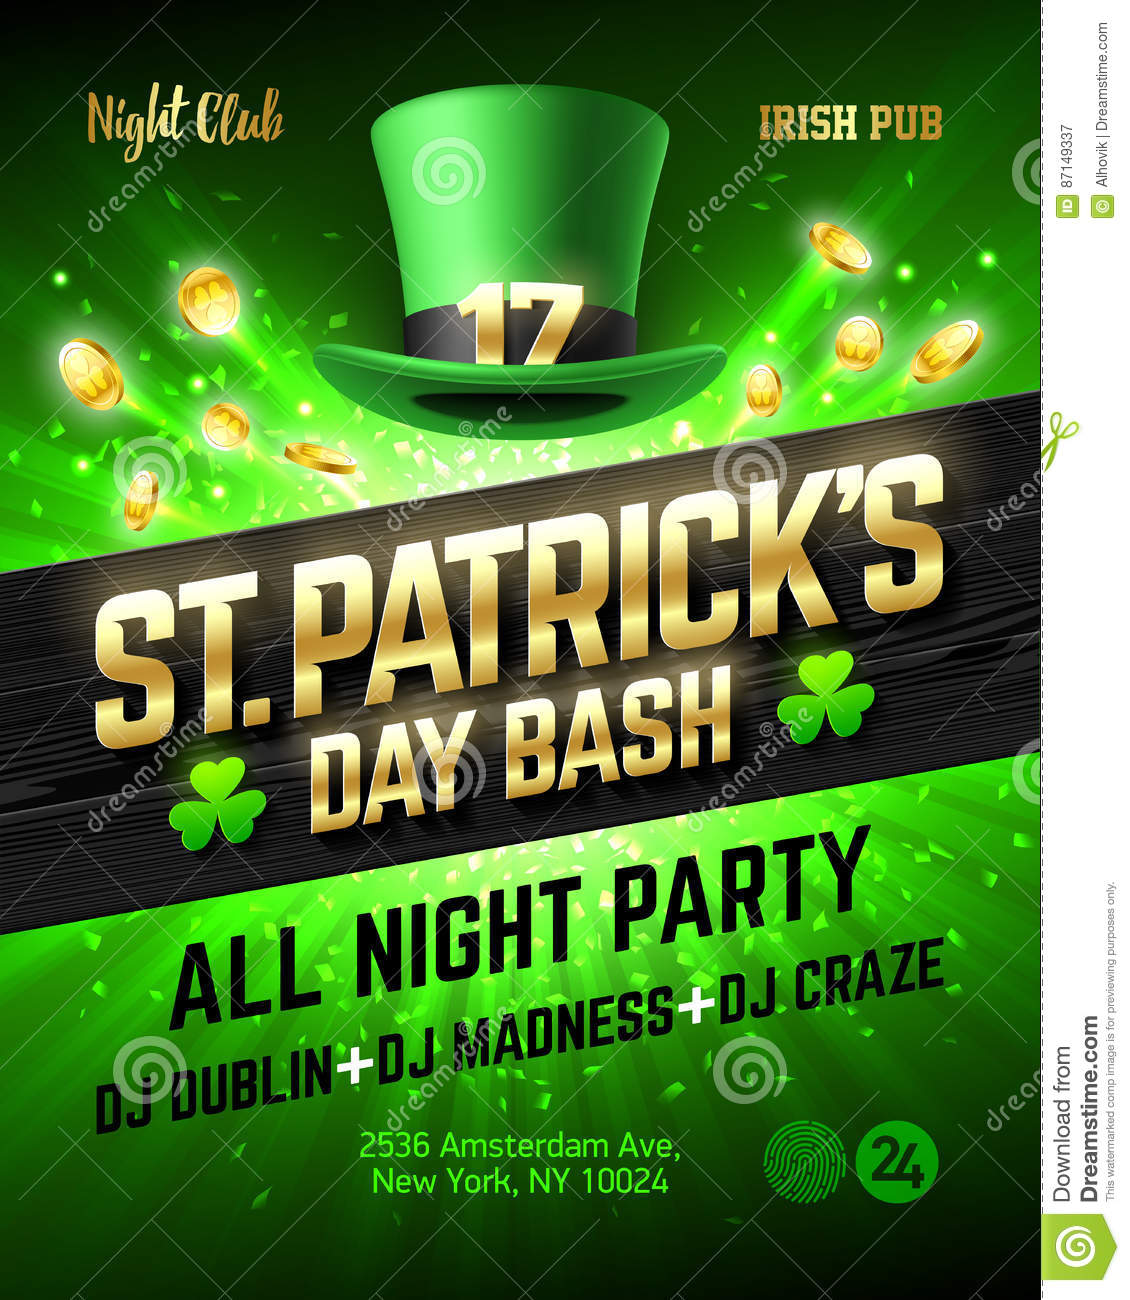 Poster design dublin - Saint Patrick S Day Bash Celebration Poster Design